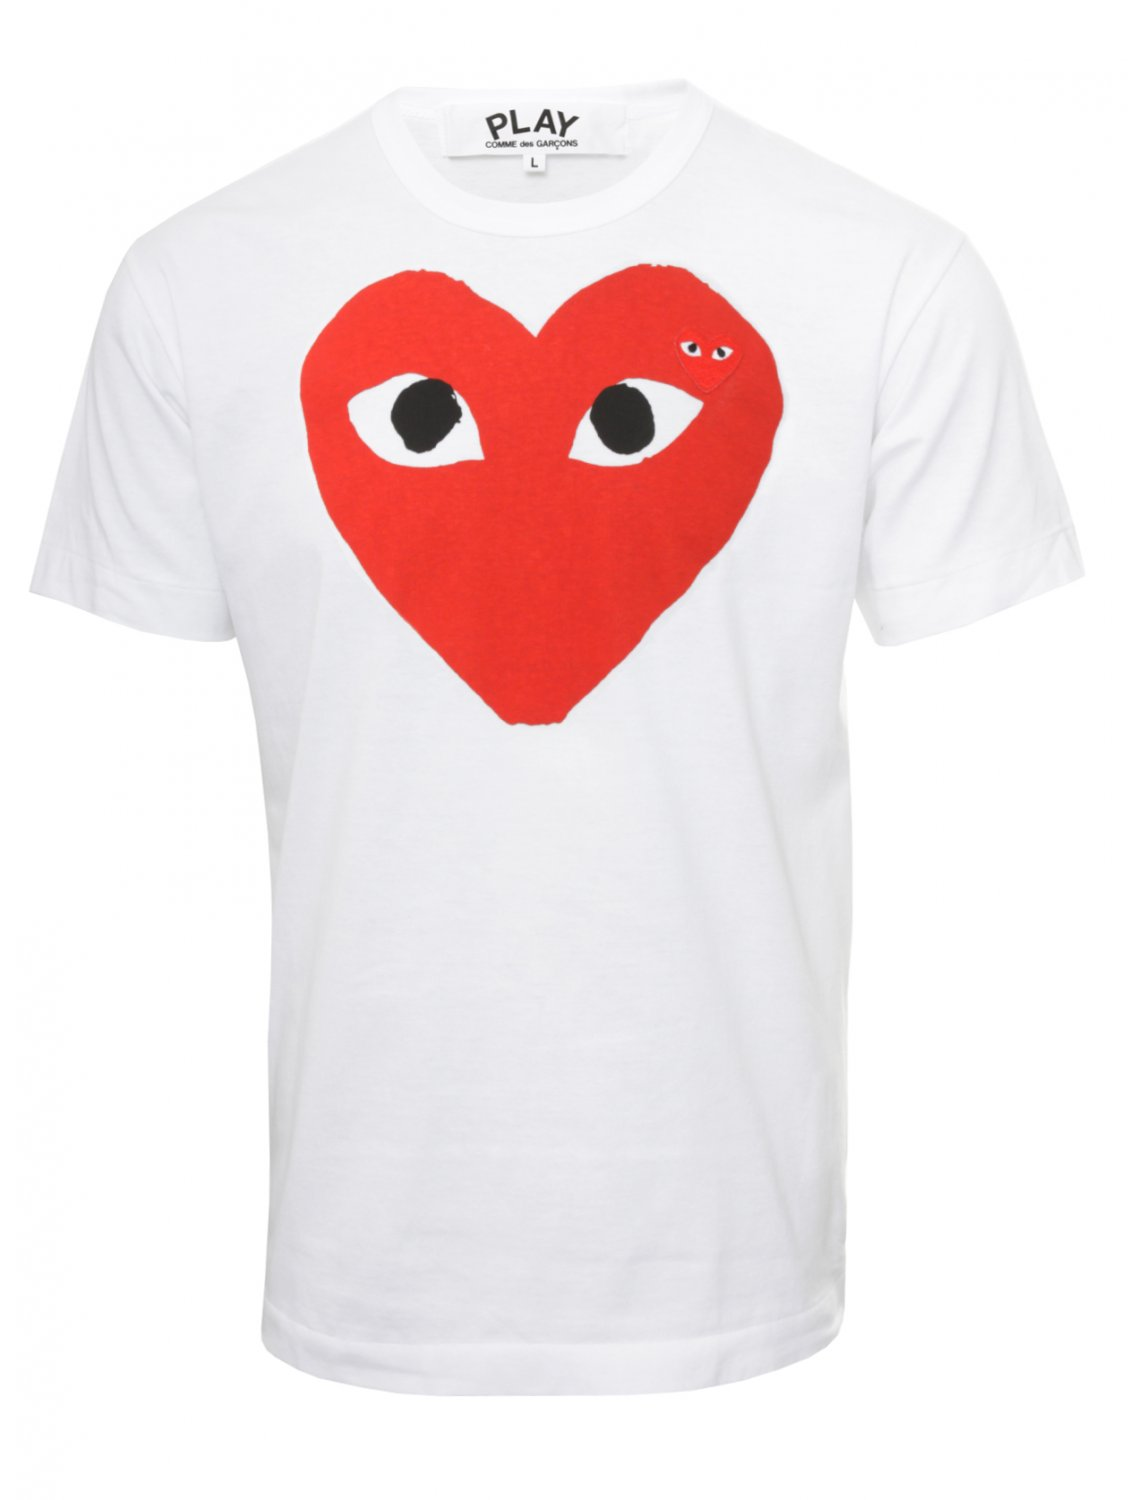 comme des gar ons play mens red heart logo t shirt white. Black Bedroom Furniture Sets. Home Design Ideas